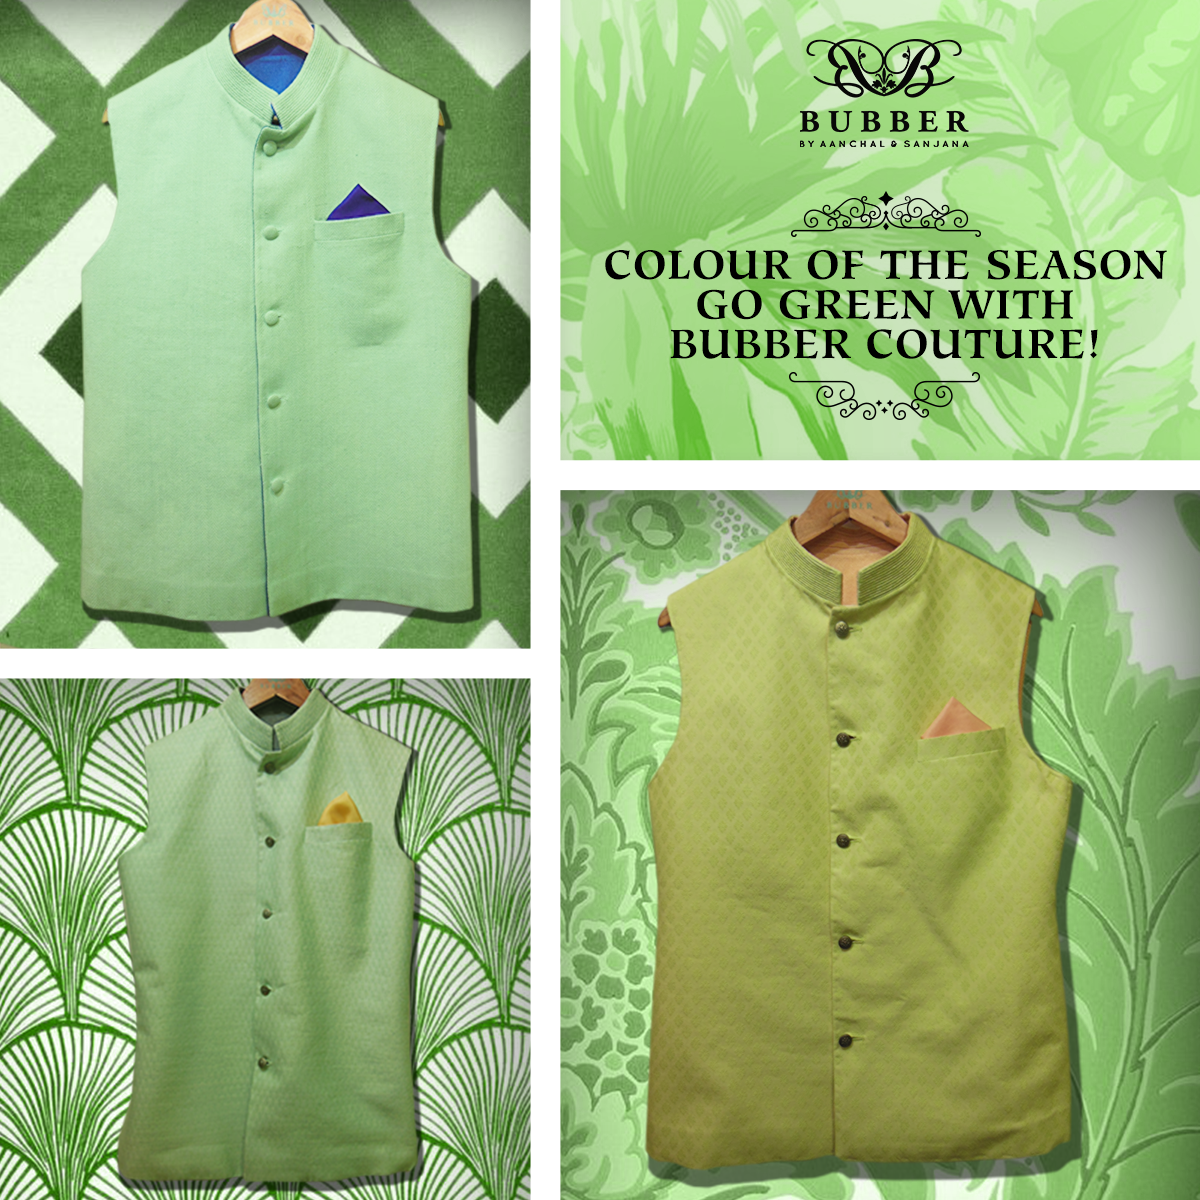 Looking for that perfect ensemble for a summer wedding?   Go green with Bubber Couture's mint & lime subtle detailed bandhis!  Can be customised in any size!  Click here to book an appointment: bit.ly/Bubber_Couture Contact: 9819980846/9820709875 (appointment basis only) Email: info@bubbercouture.com  #mint #lime #green‬ ‪#summer #summerwedding‬ ‪#pastels‬ ‪#indian #indiangroom #groom #menswear #bundi #bandi #bandhi ‪#‎bubbercouture